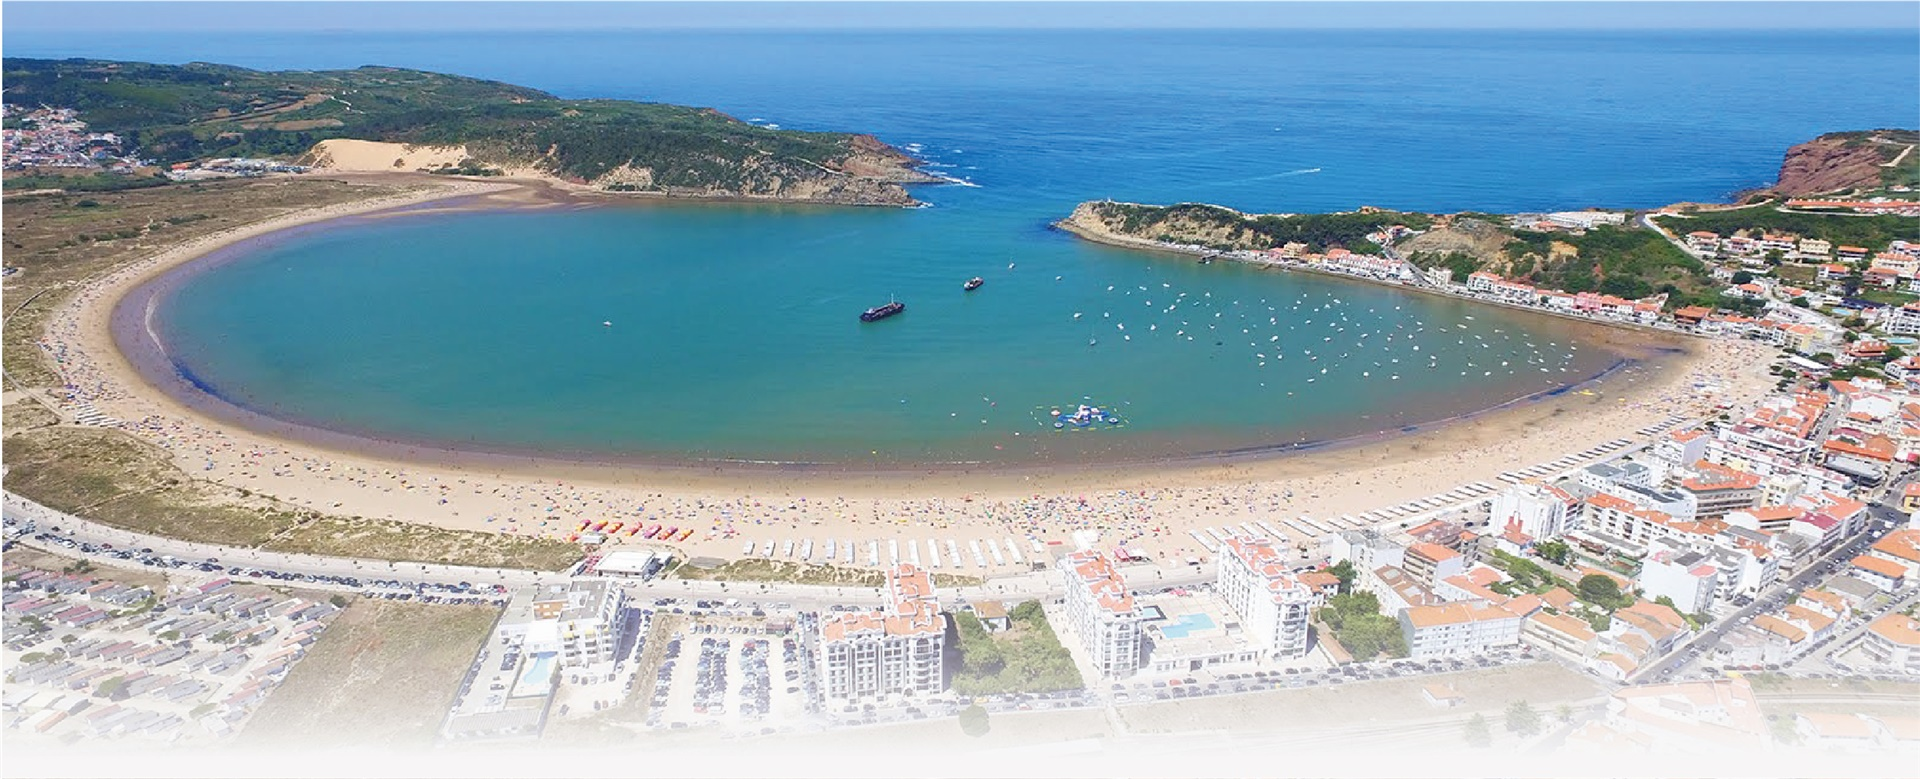 Portugal Realty, property for sale in portugal, portugal property, houses for sale in portugal, algarve property, for sale villas for sale in portugal, property for sale in portugal silver coast, lisbon property for sale